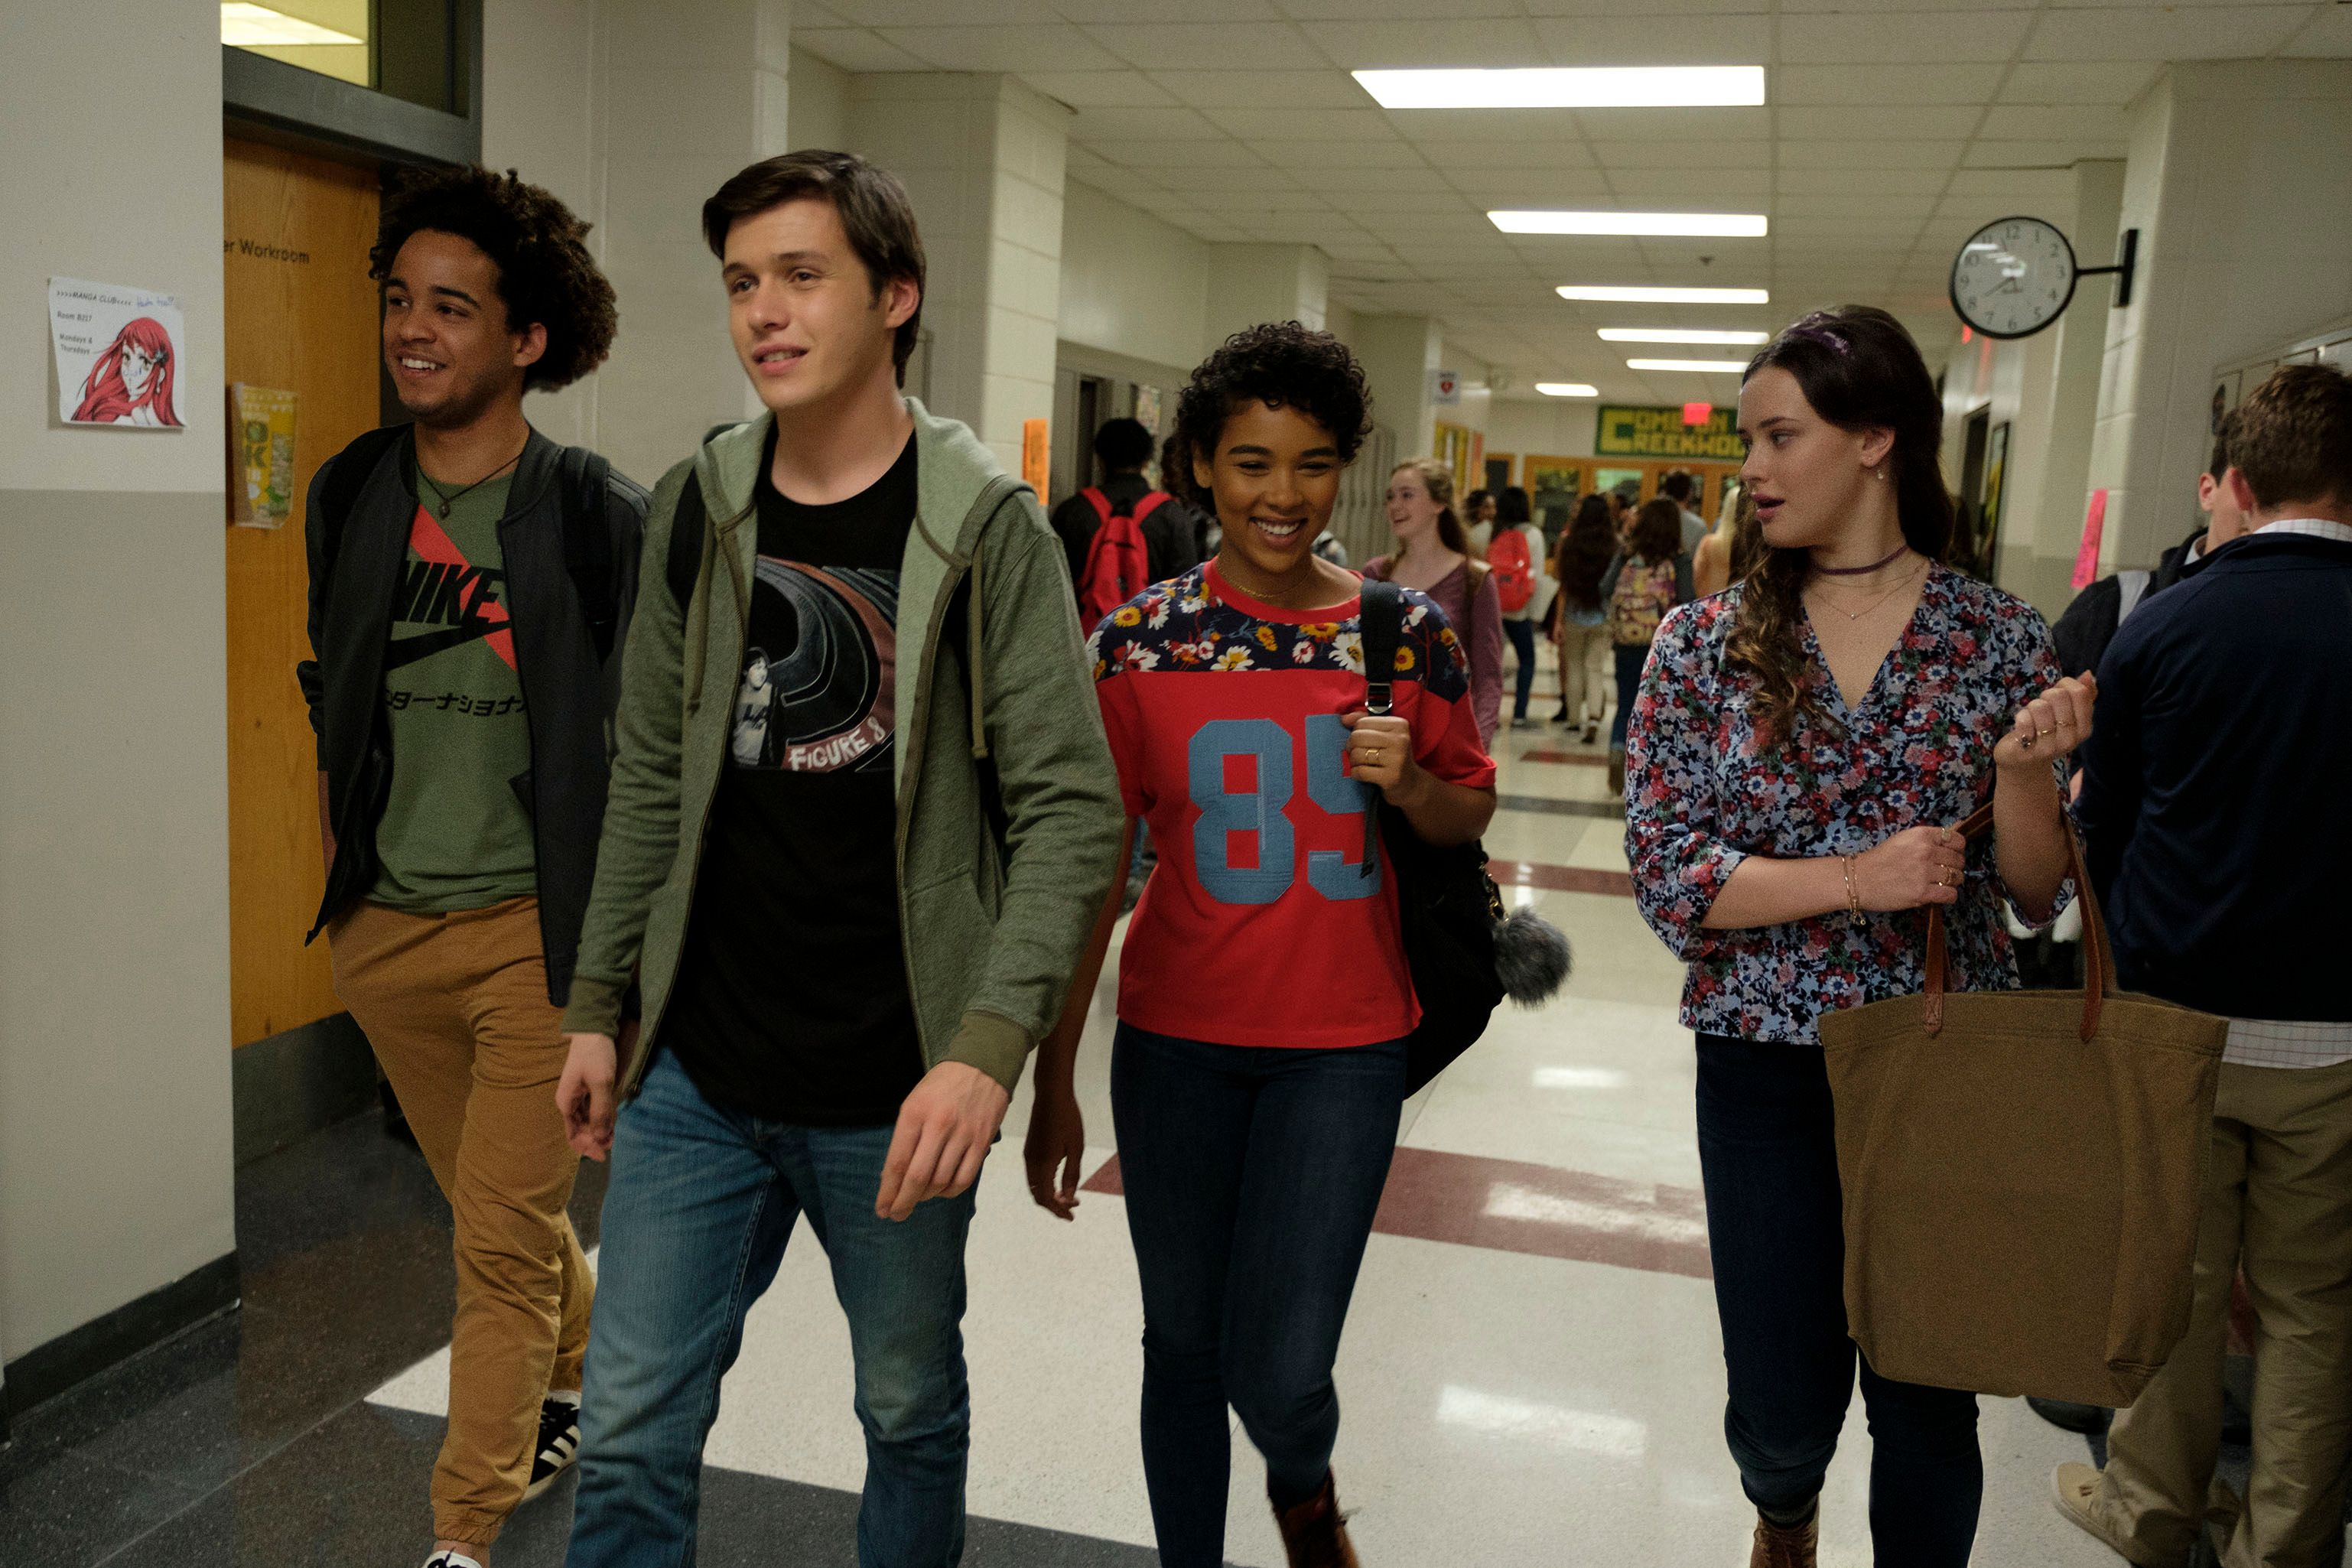 A 'Love, Simon' TV Series Is Coming to Disney